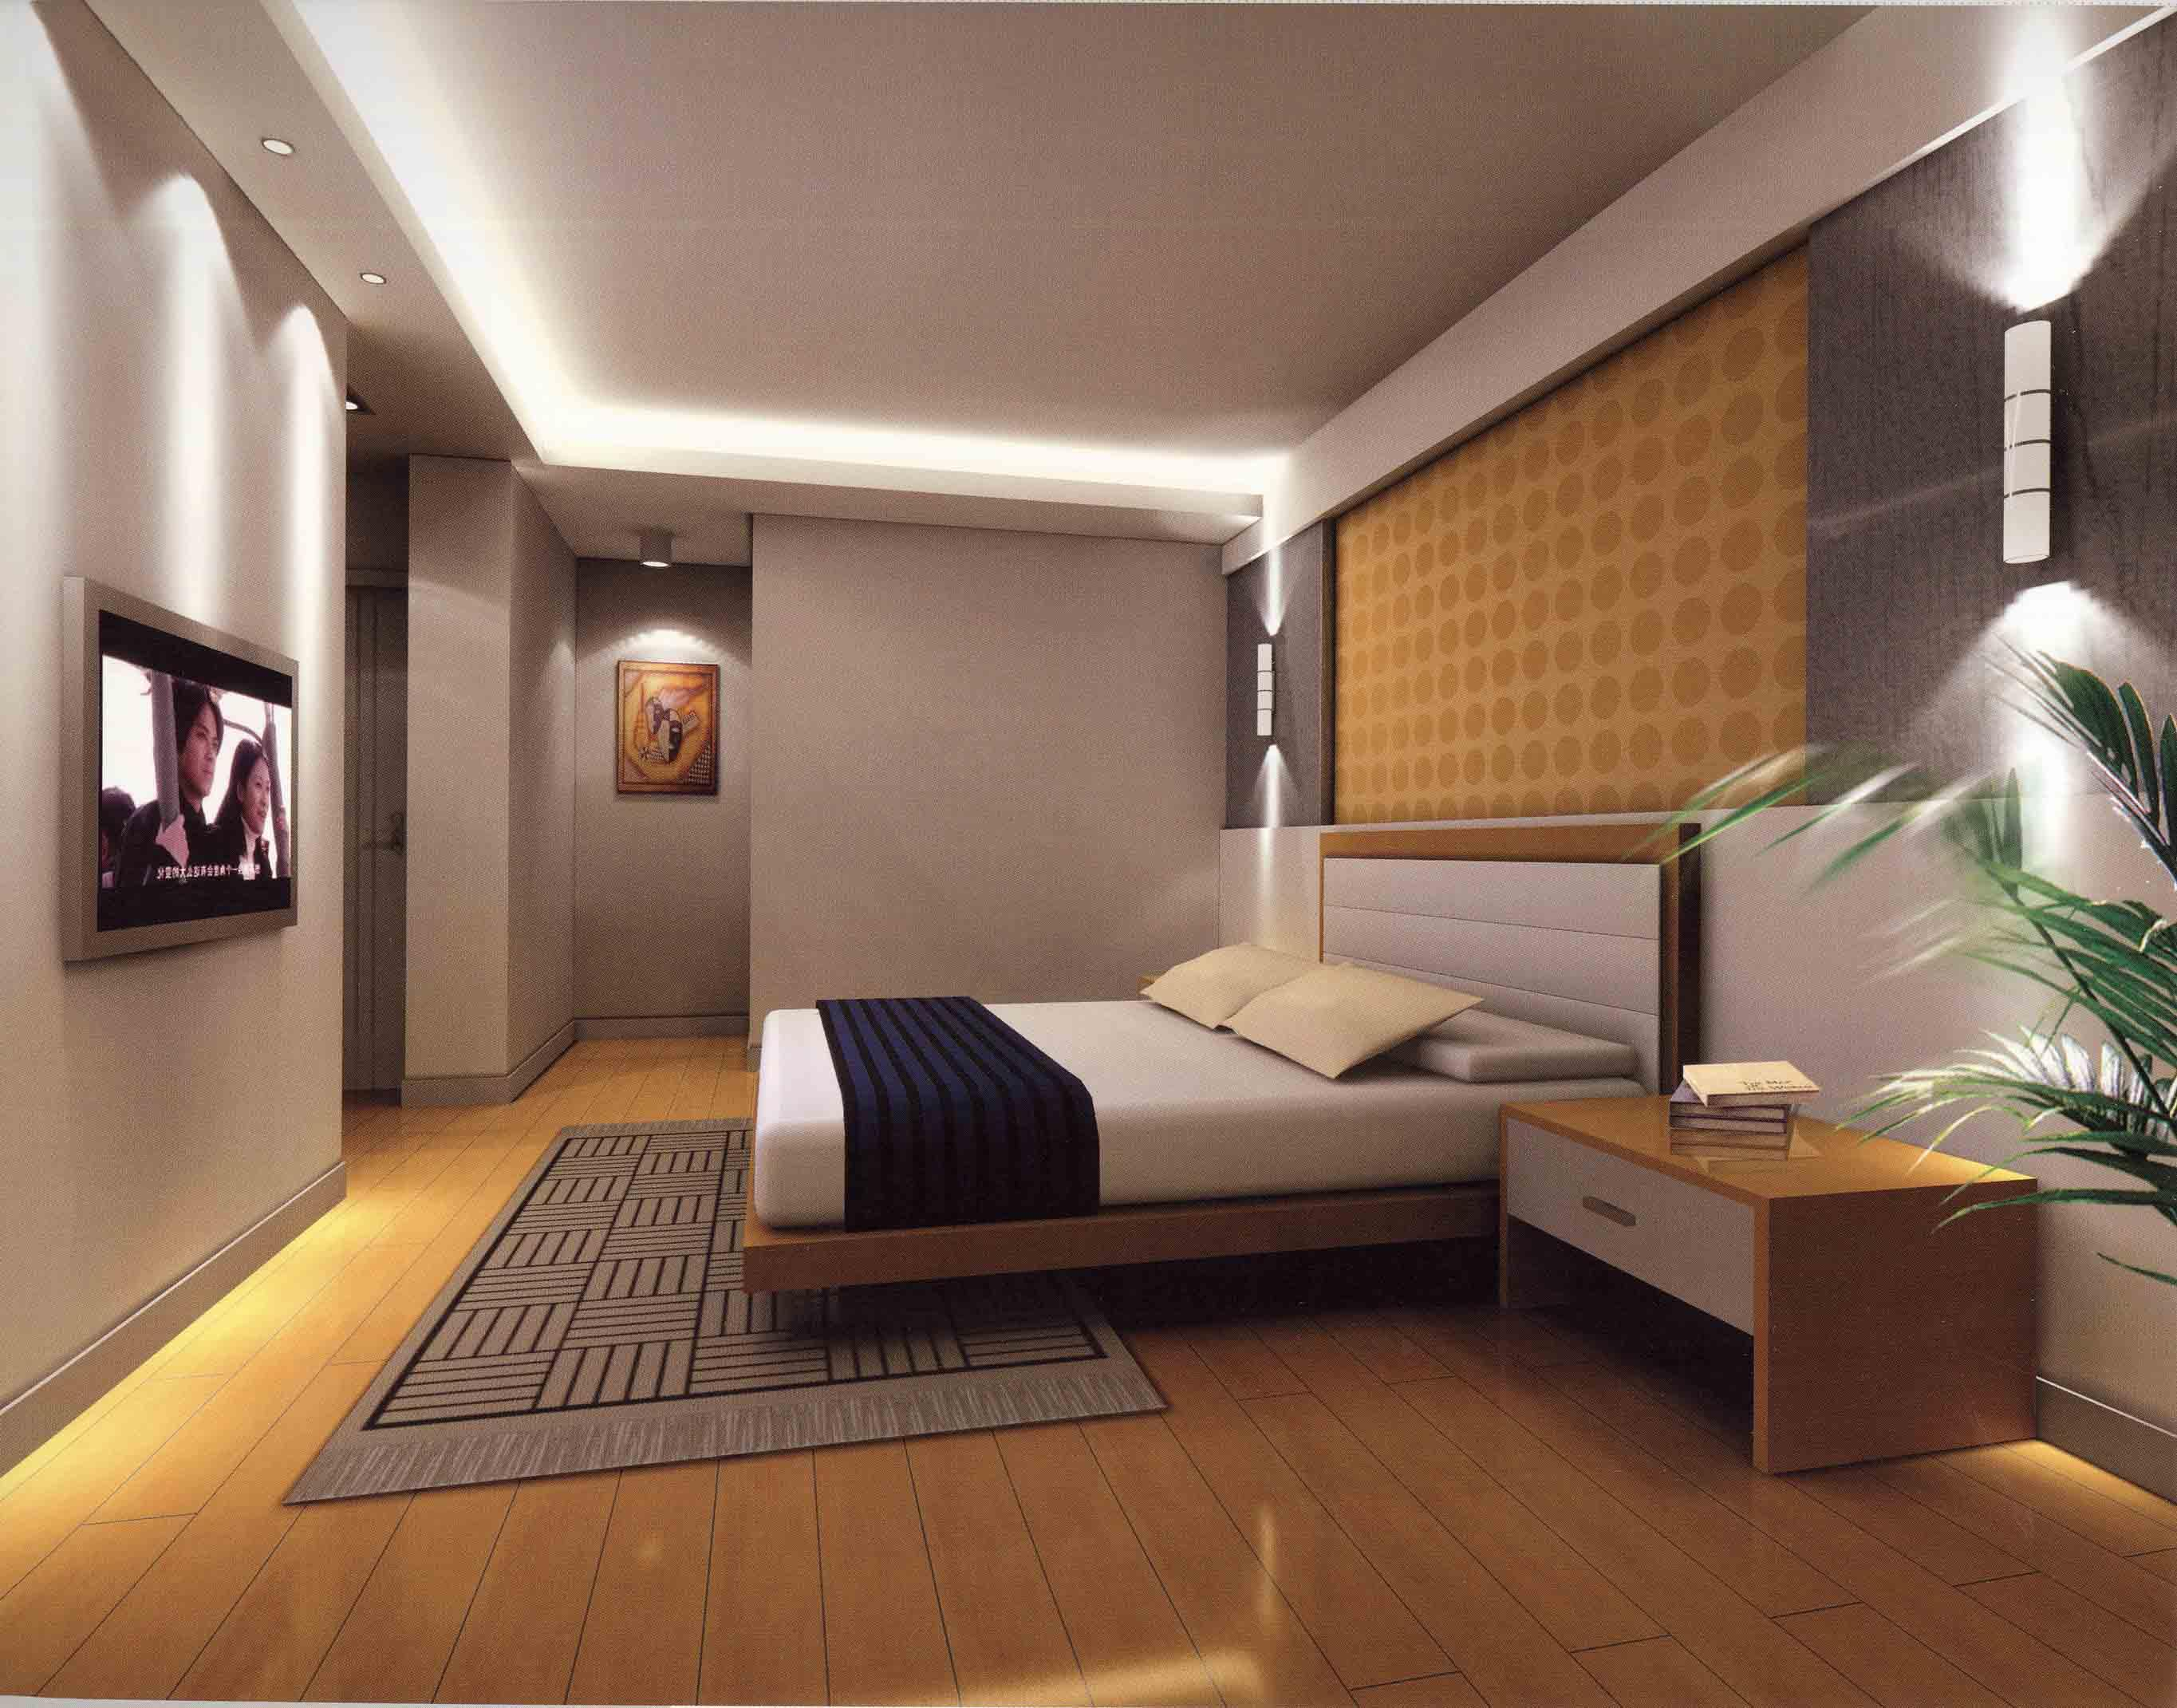 25 cool bedroom designs collection for Bedroom decoration 2015